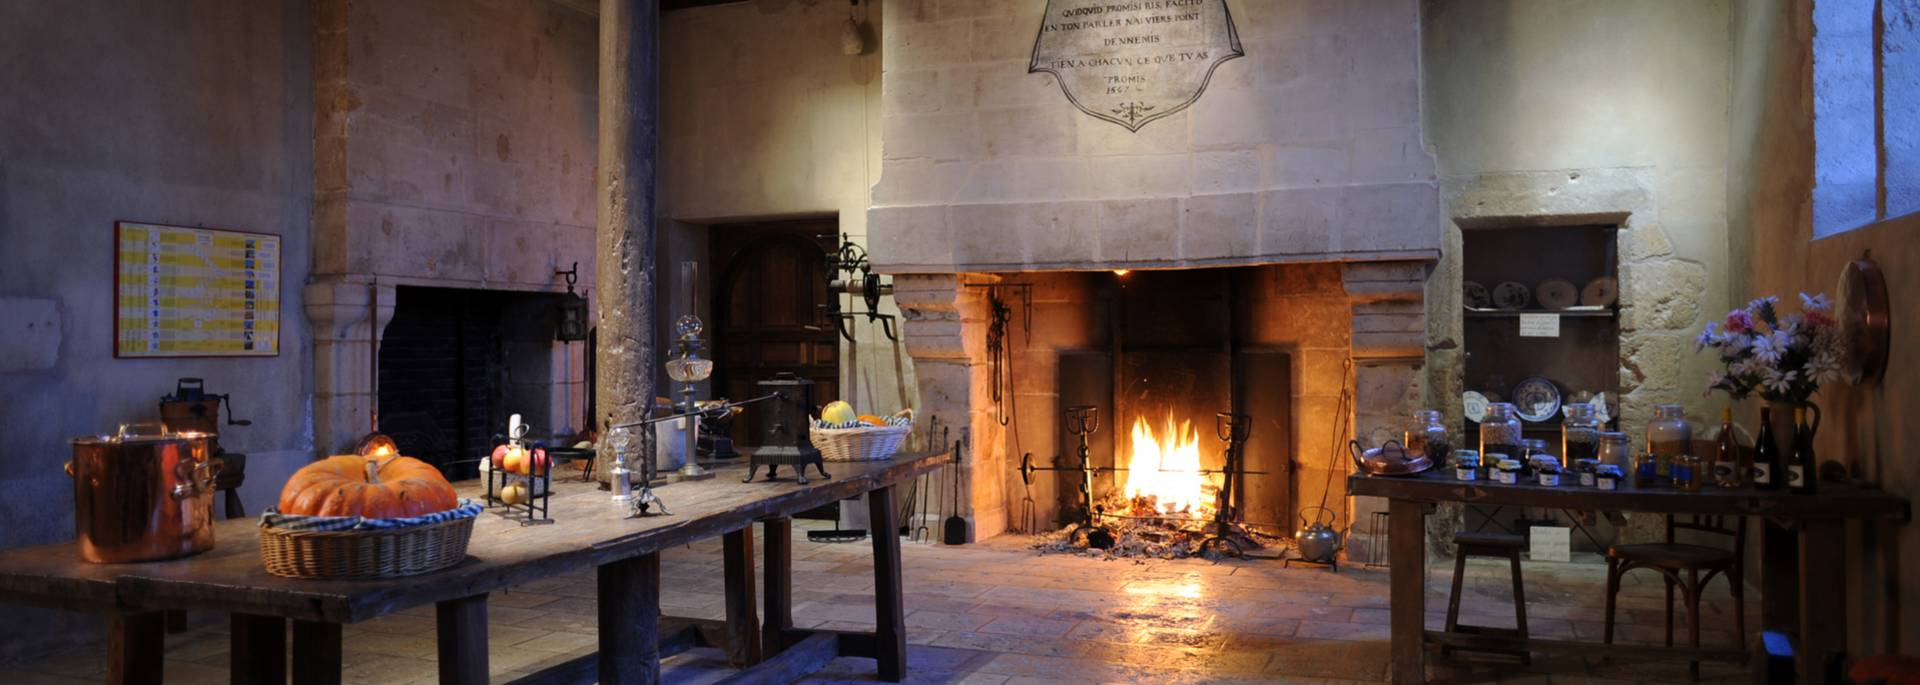 Fireplace in the Château de Beauregard